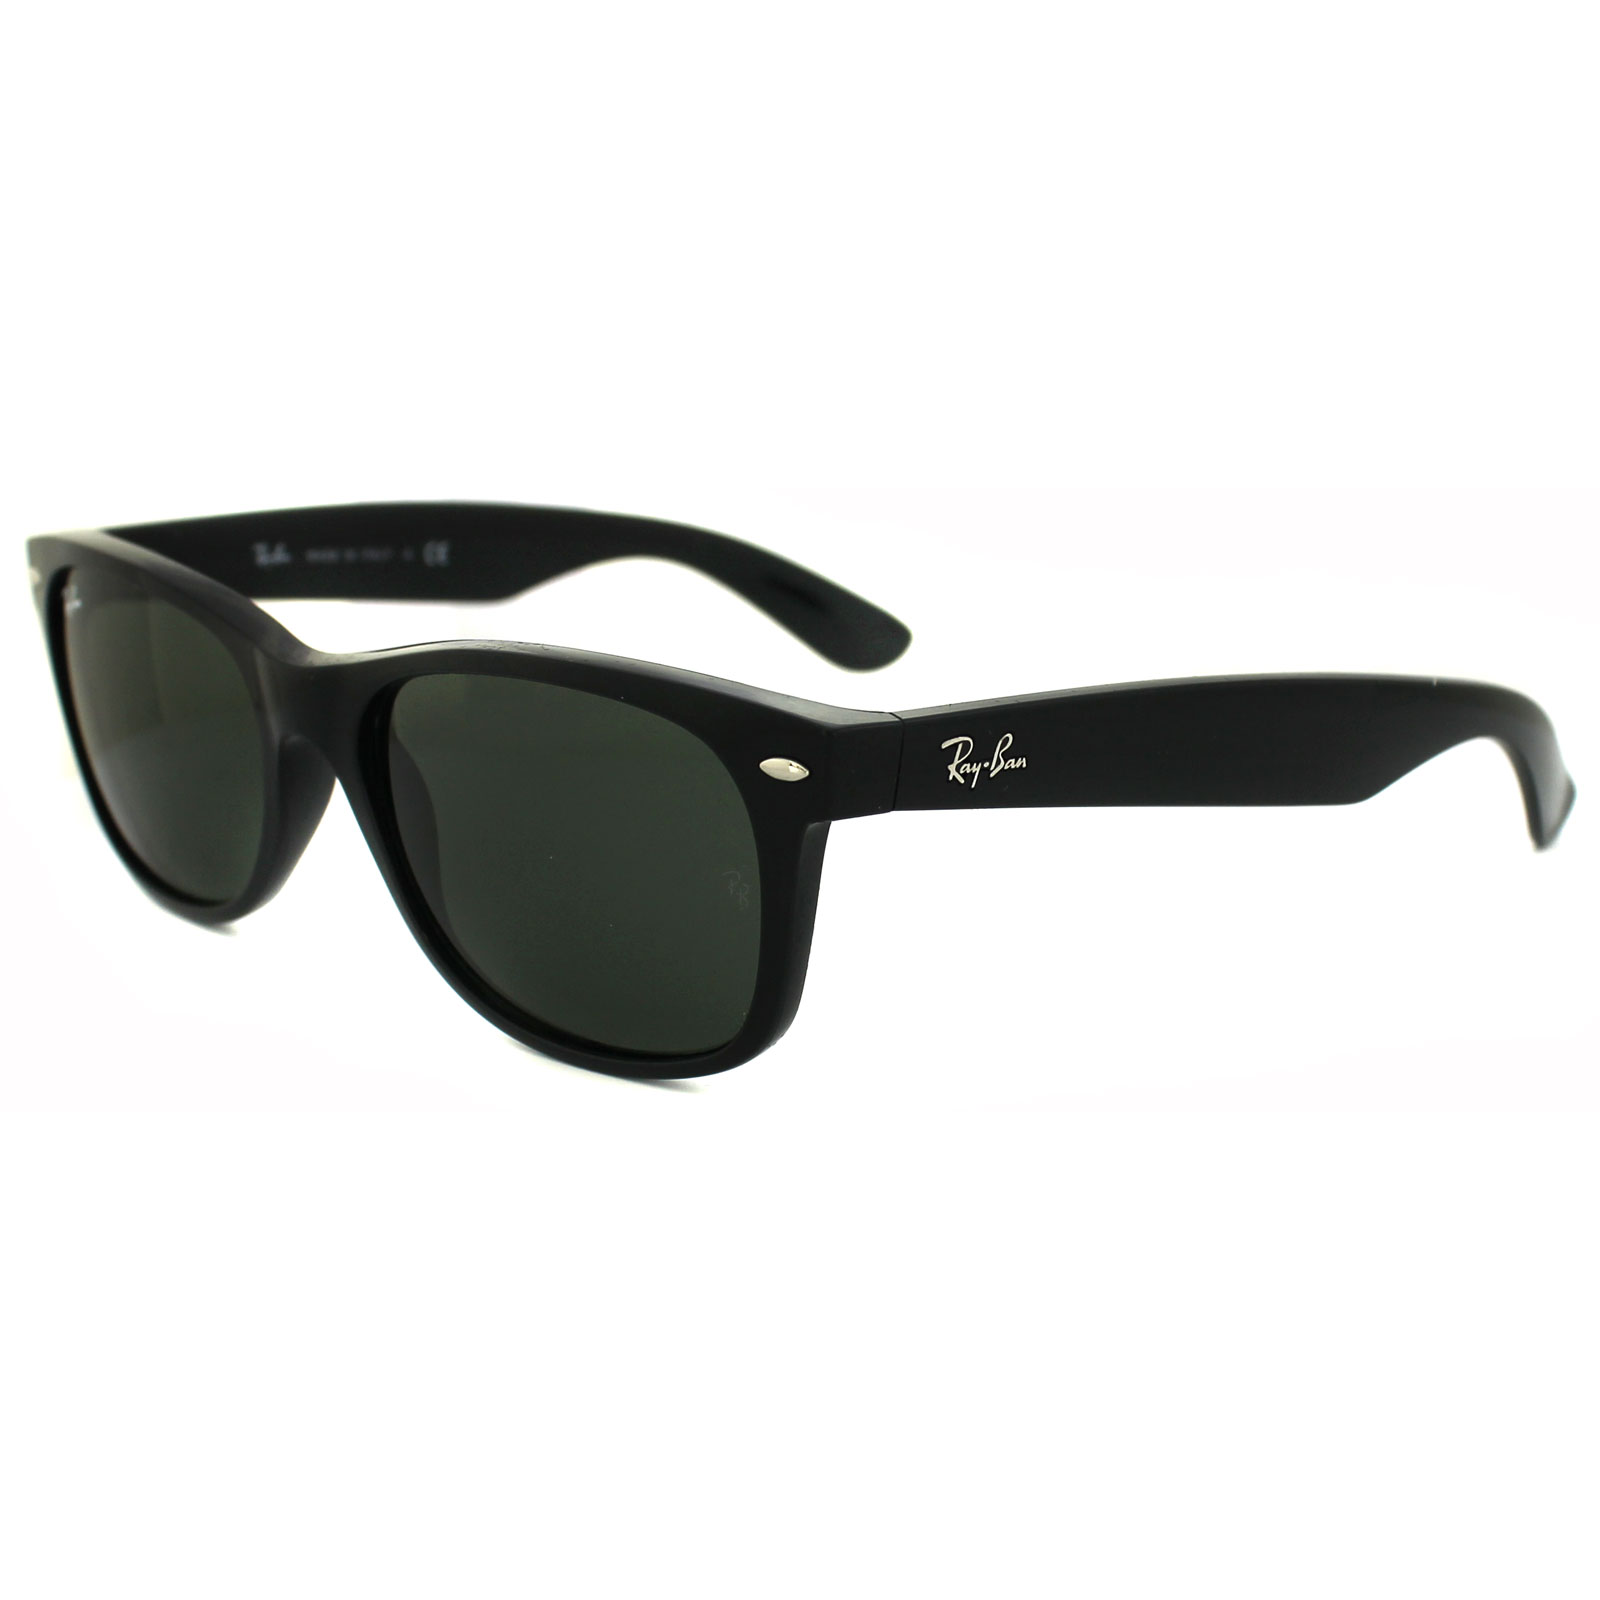 Uk Ray Ban Sunglasses  ray ban new wayfarer 2132 sunglasses